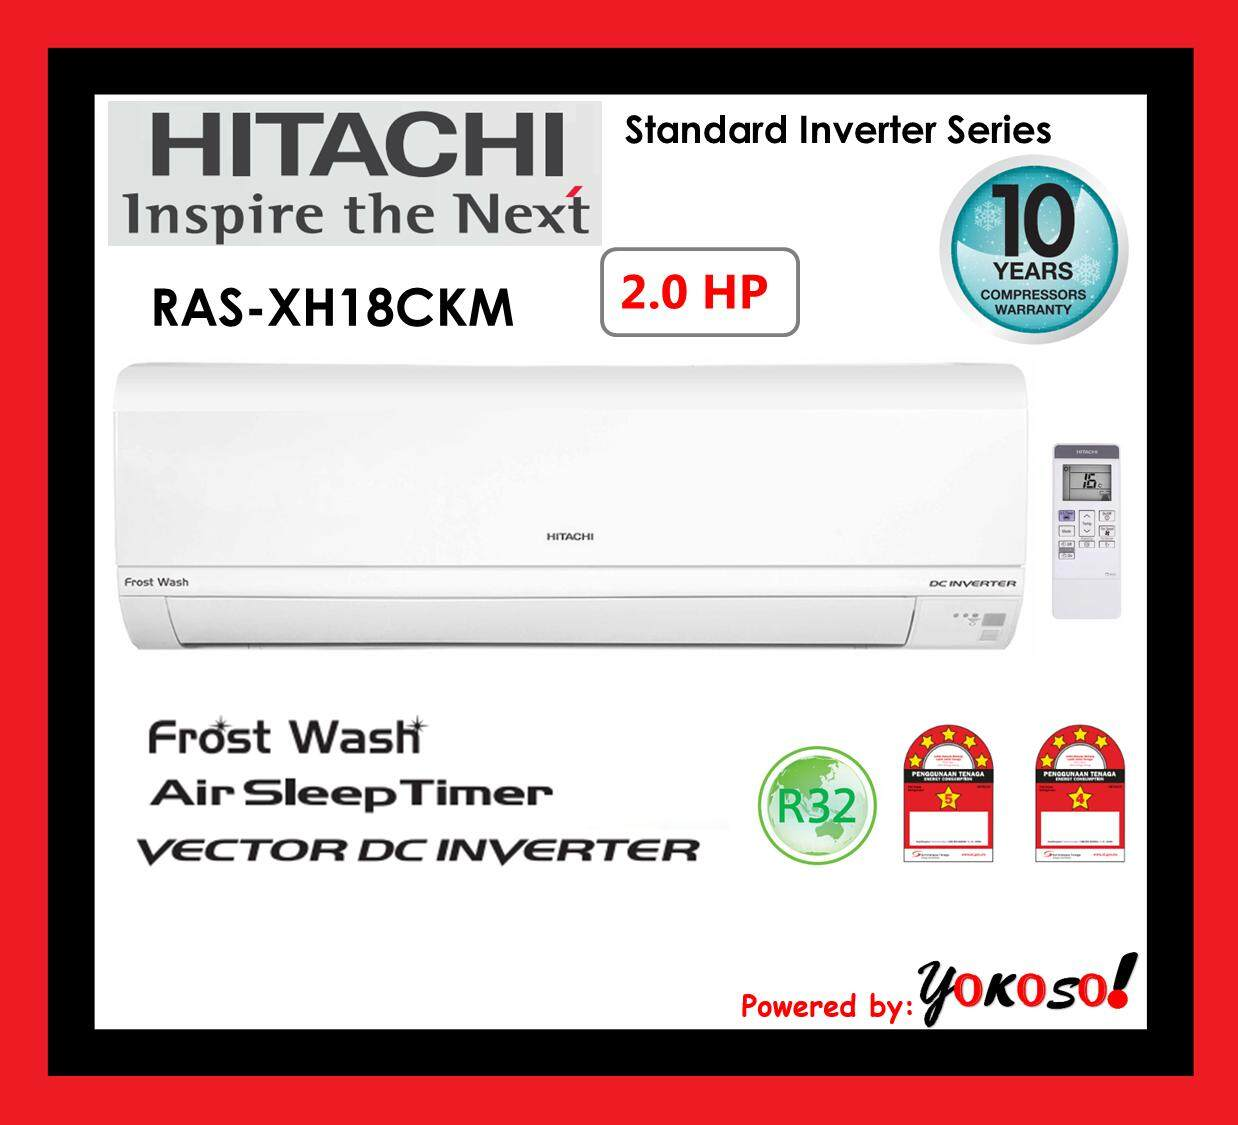 Hitachi RAS-XH18CKM 2.0HP Standard Inverter Series